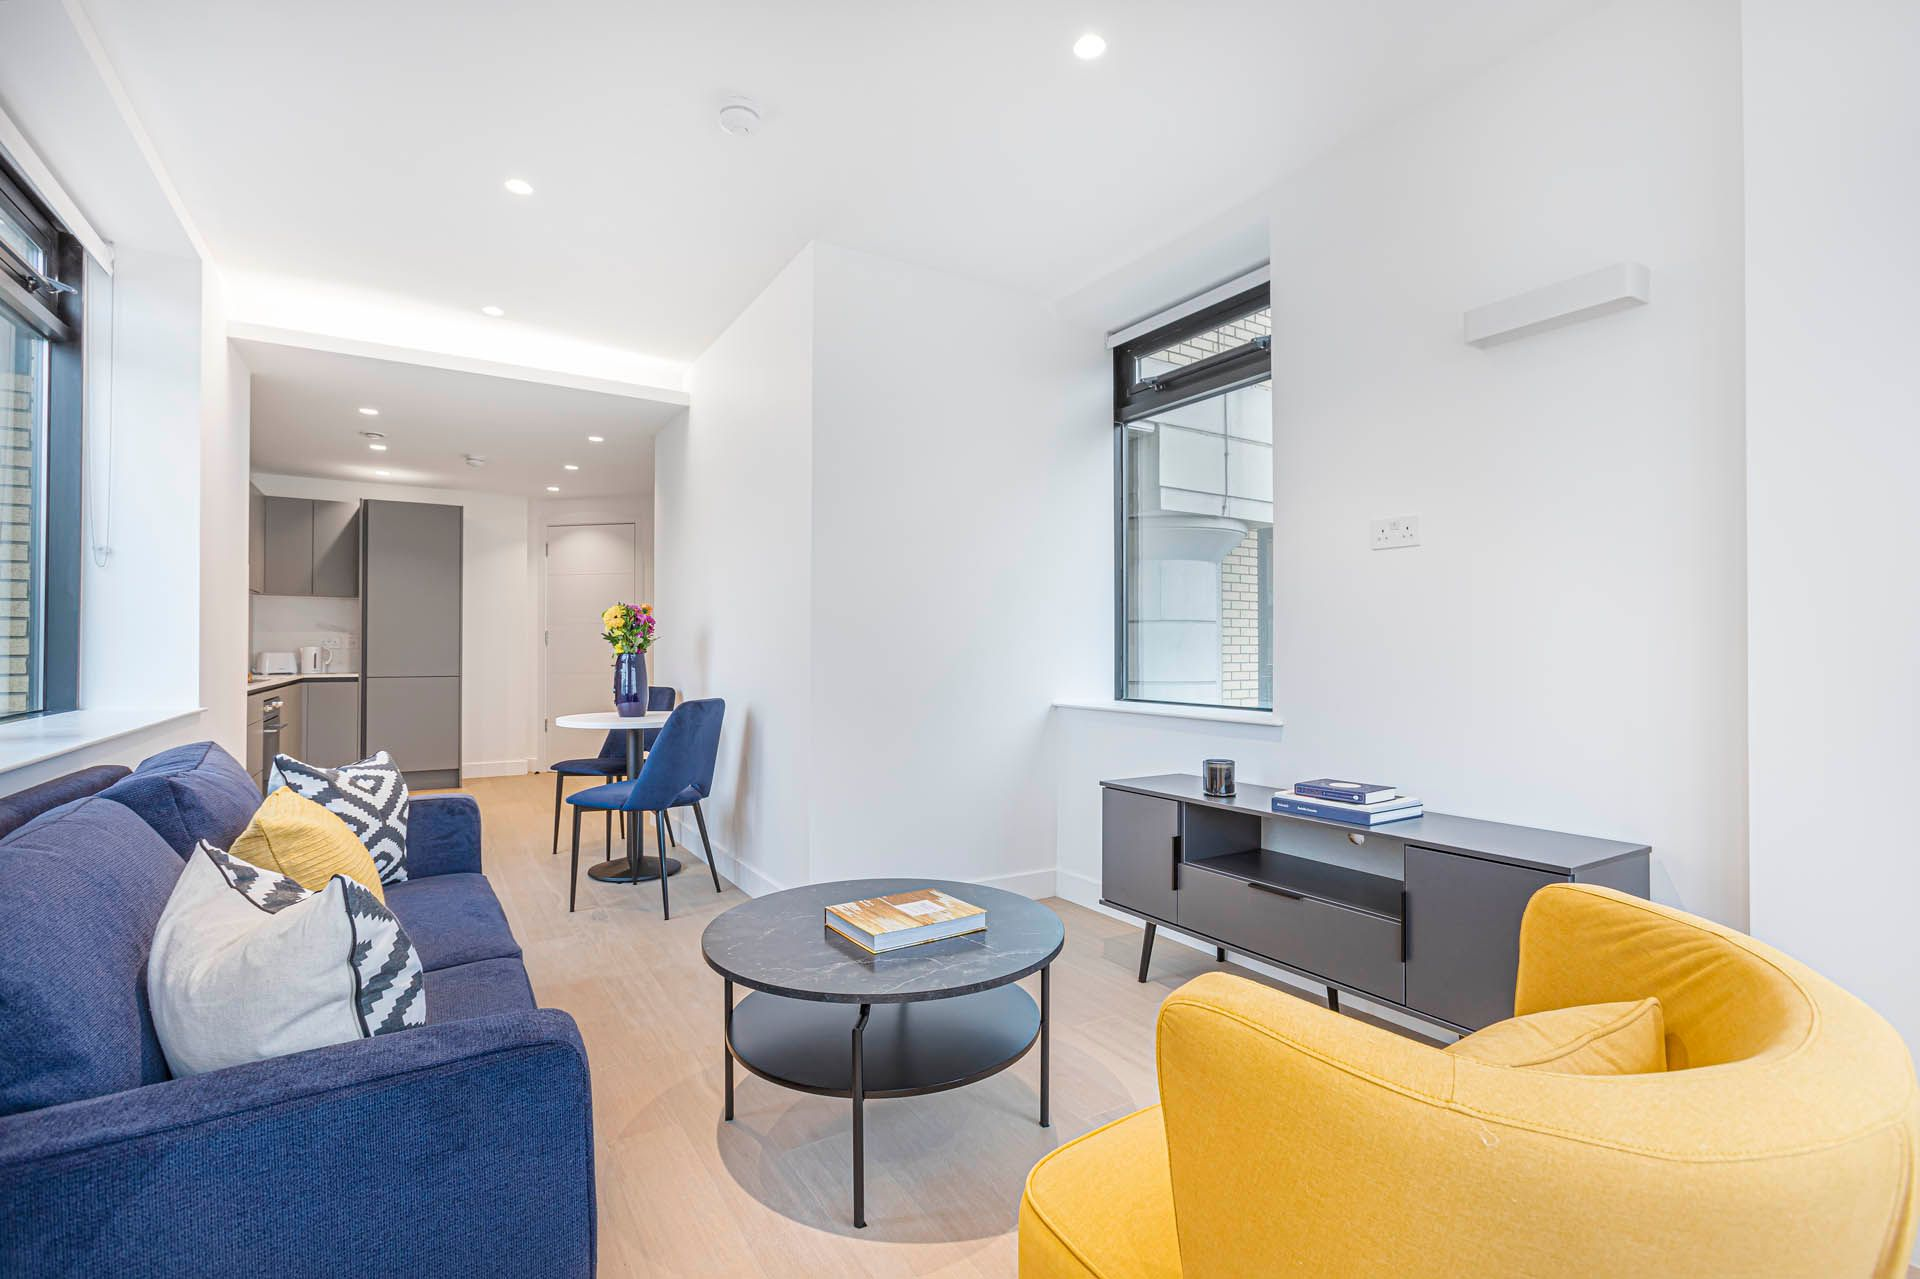 1 Bedroom apartment to rent in London SKI-VH-0034